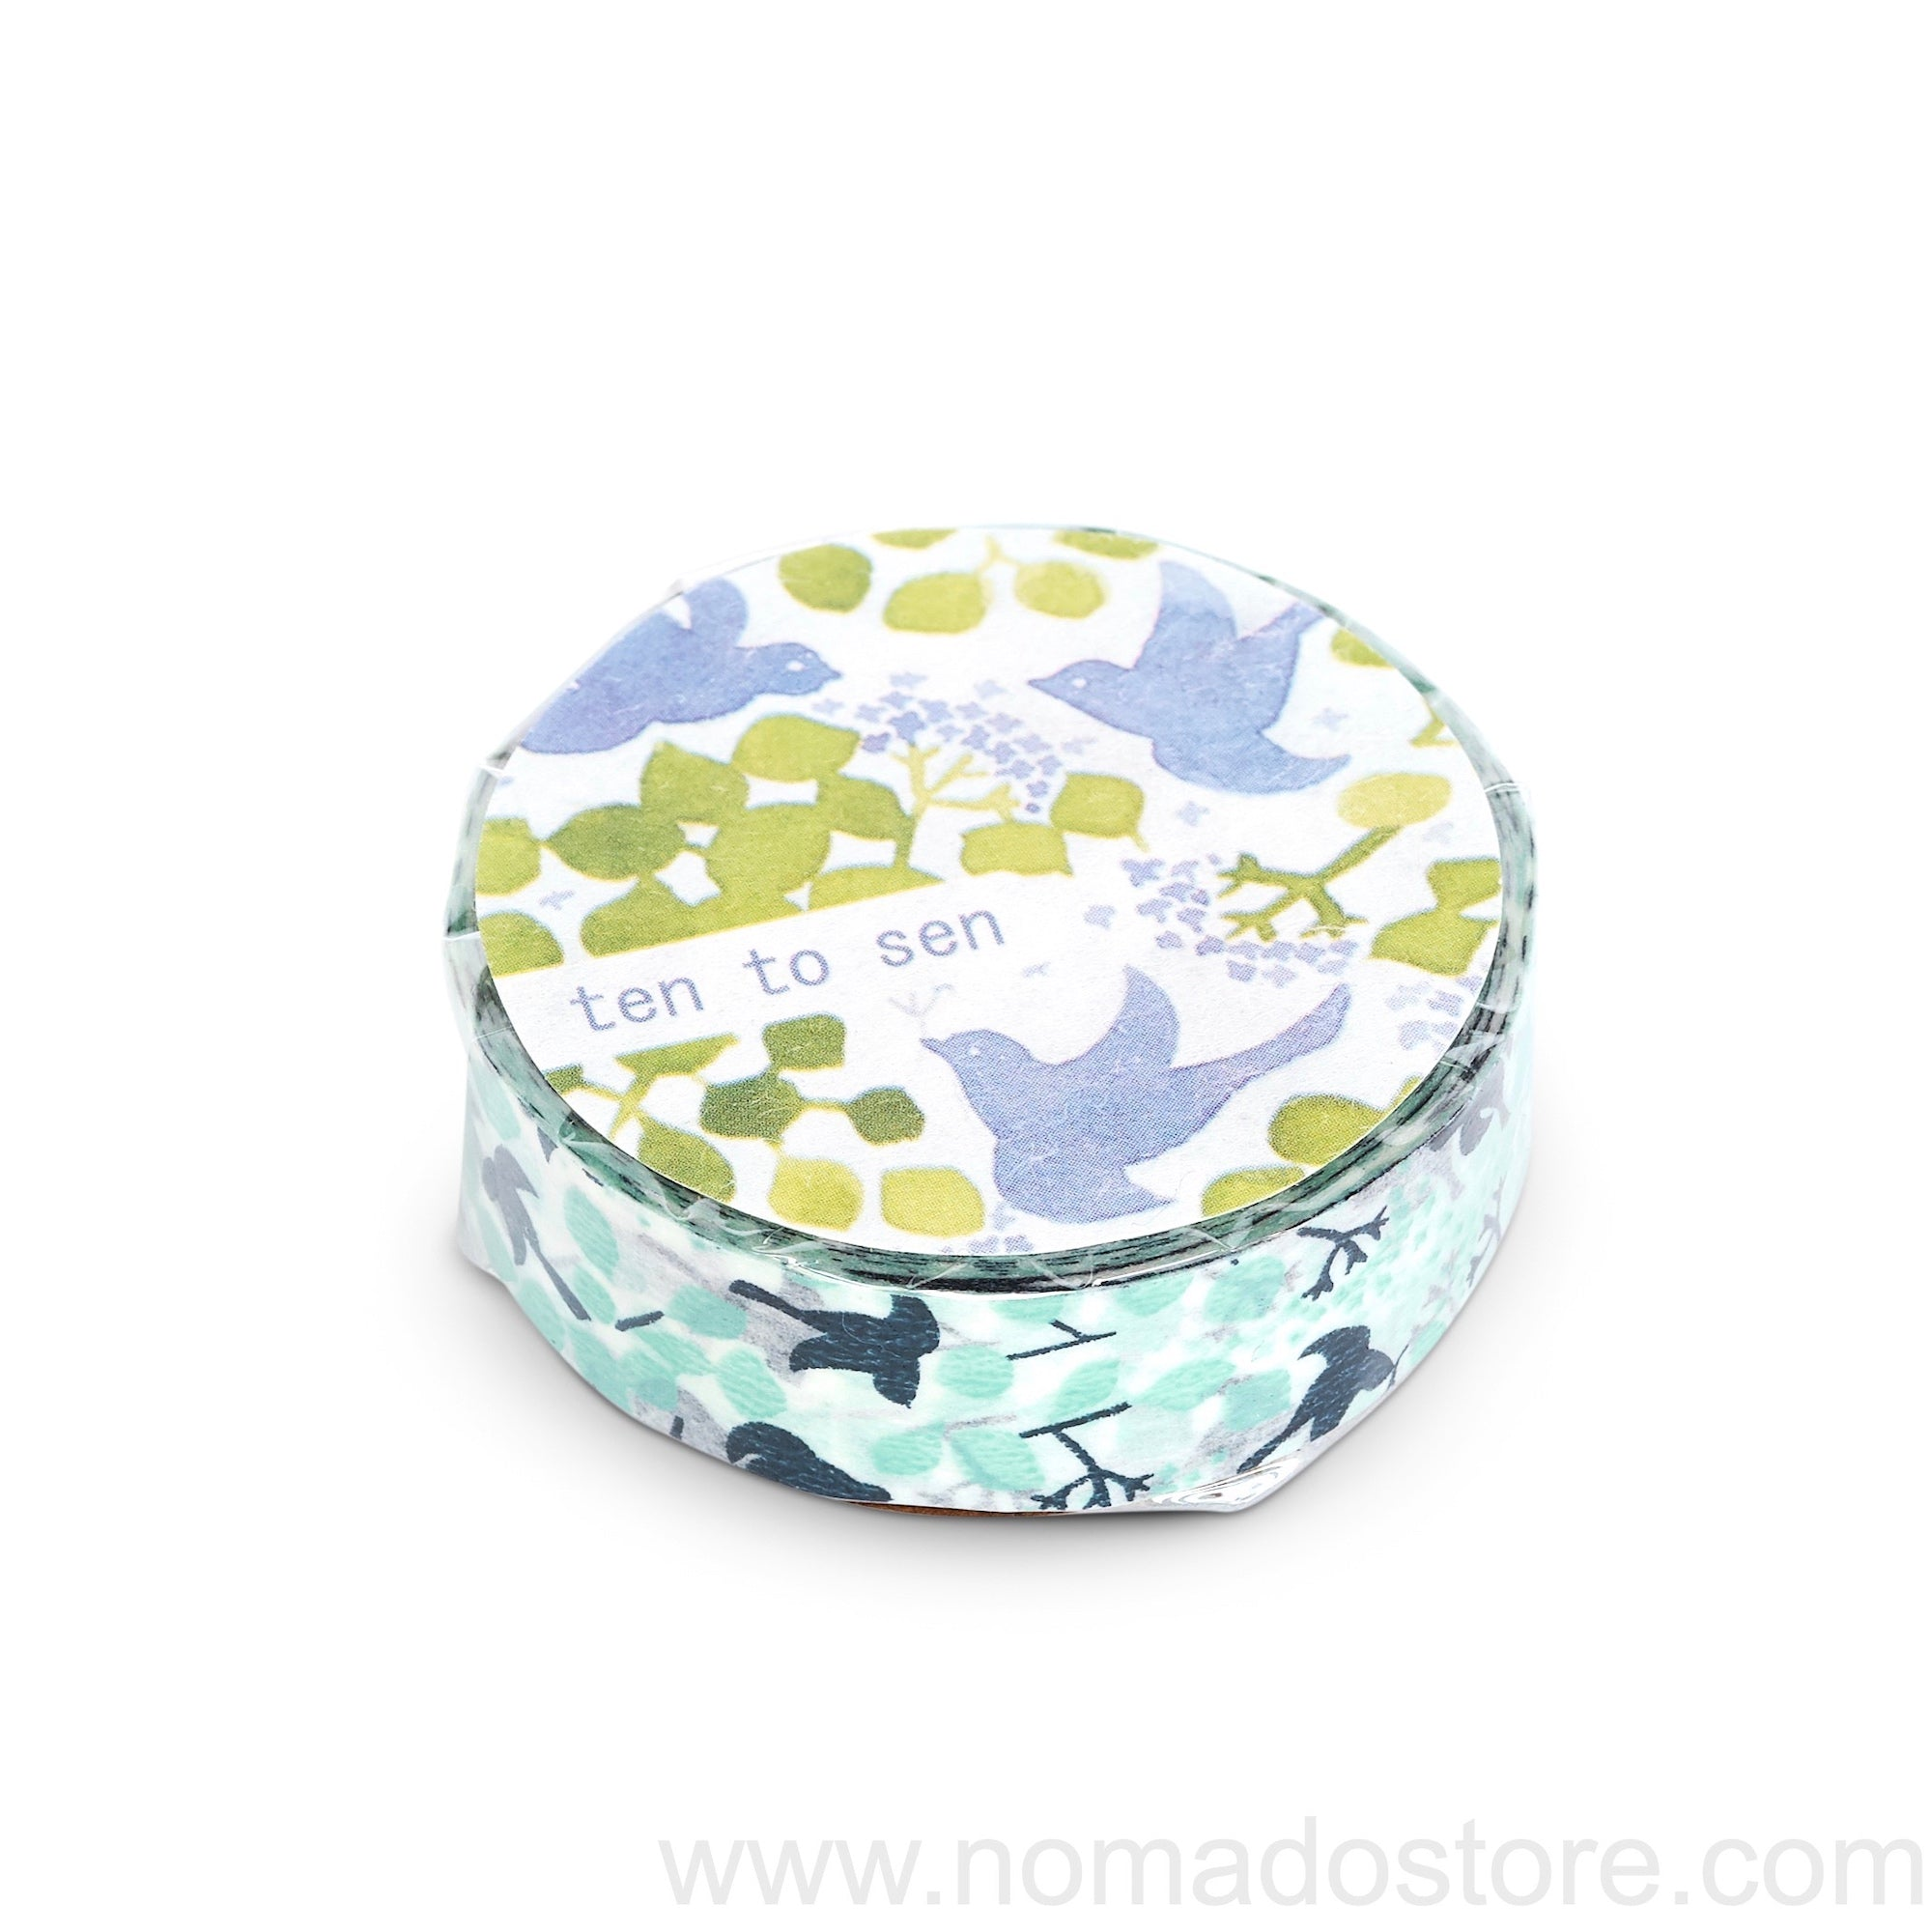 Classiky Message Bird Masking Tape 1 piece pack (Blue) - NOMADO Store